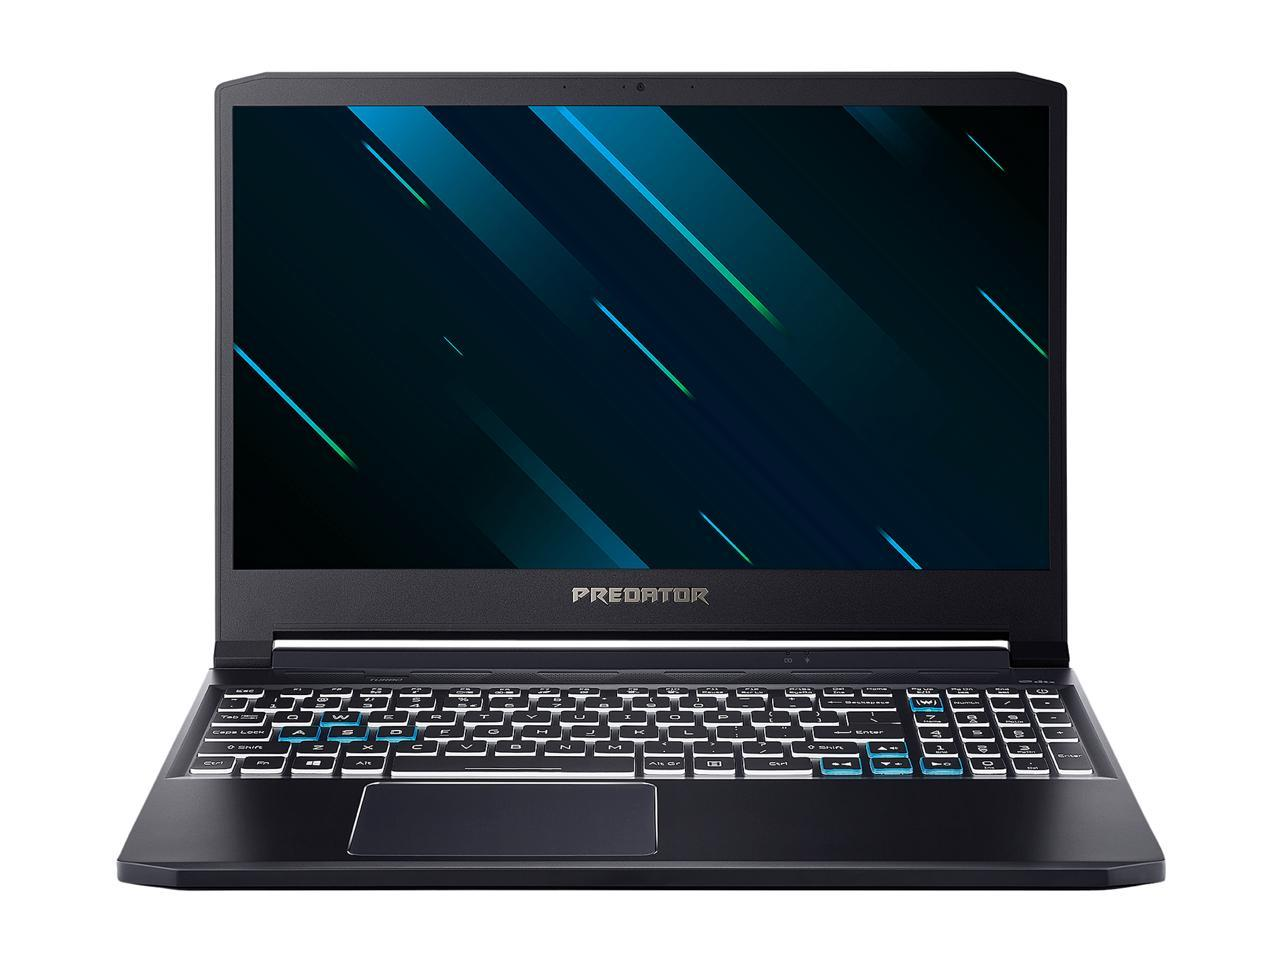 "Acer Predator Triton 300 15.6"" Intel Core i7-10750H GeForce RTX 2070 Max-Q 16GB DDR4 RAM 512GB PCIe SSD Gaming Laptop, PT315-52-73WT"